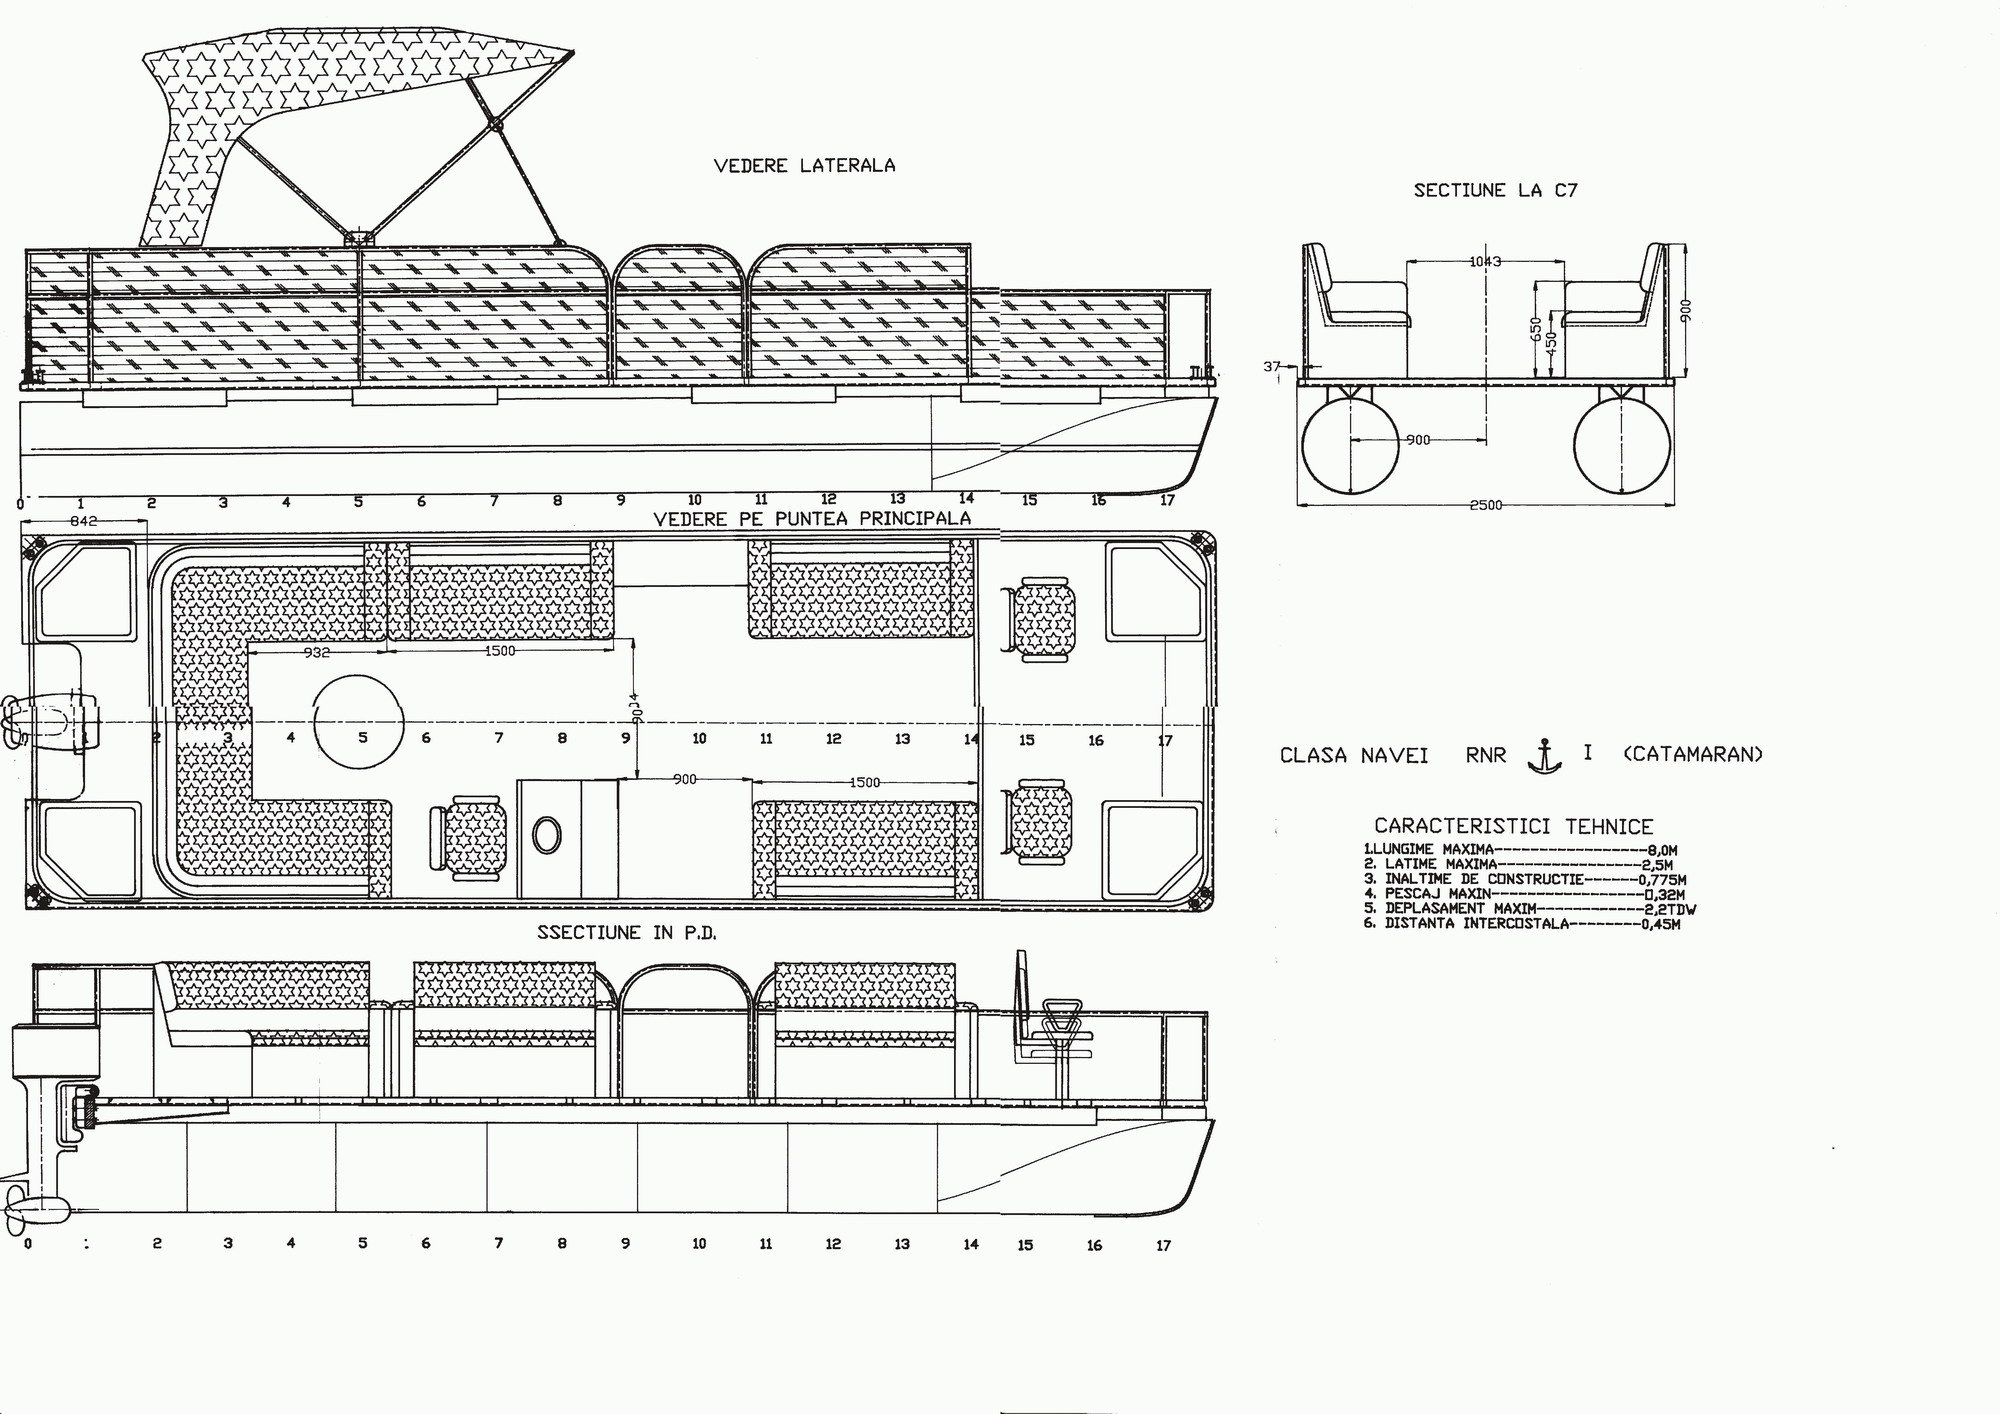 houseboat design plans - Tiny Houseboat Plans